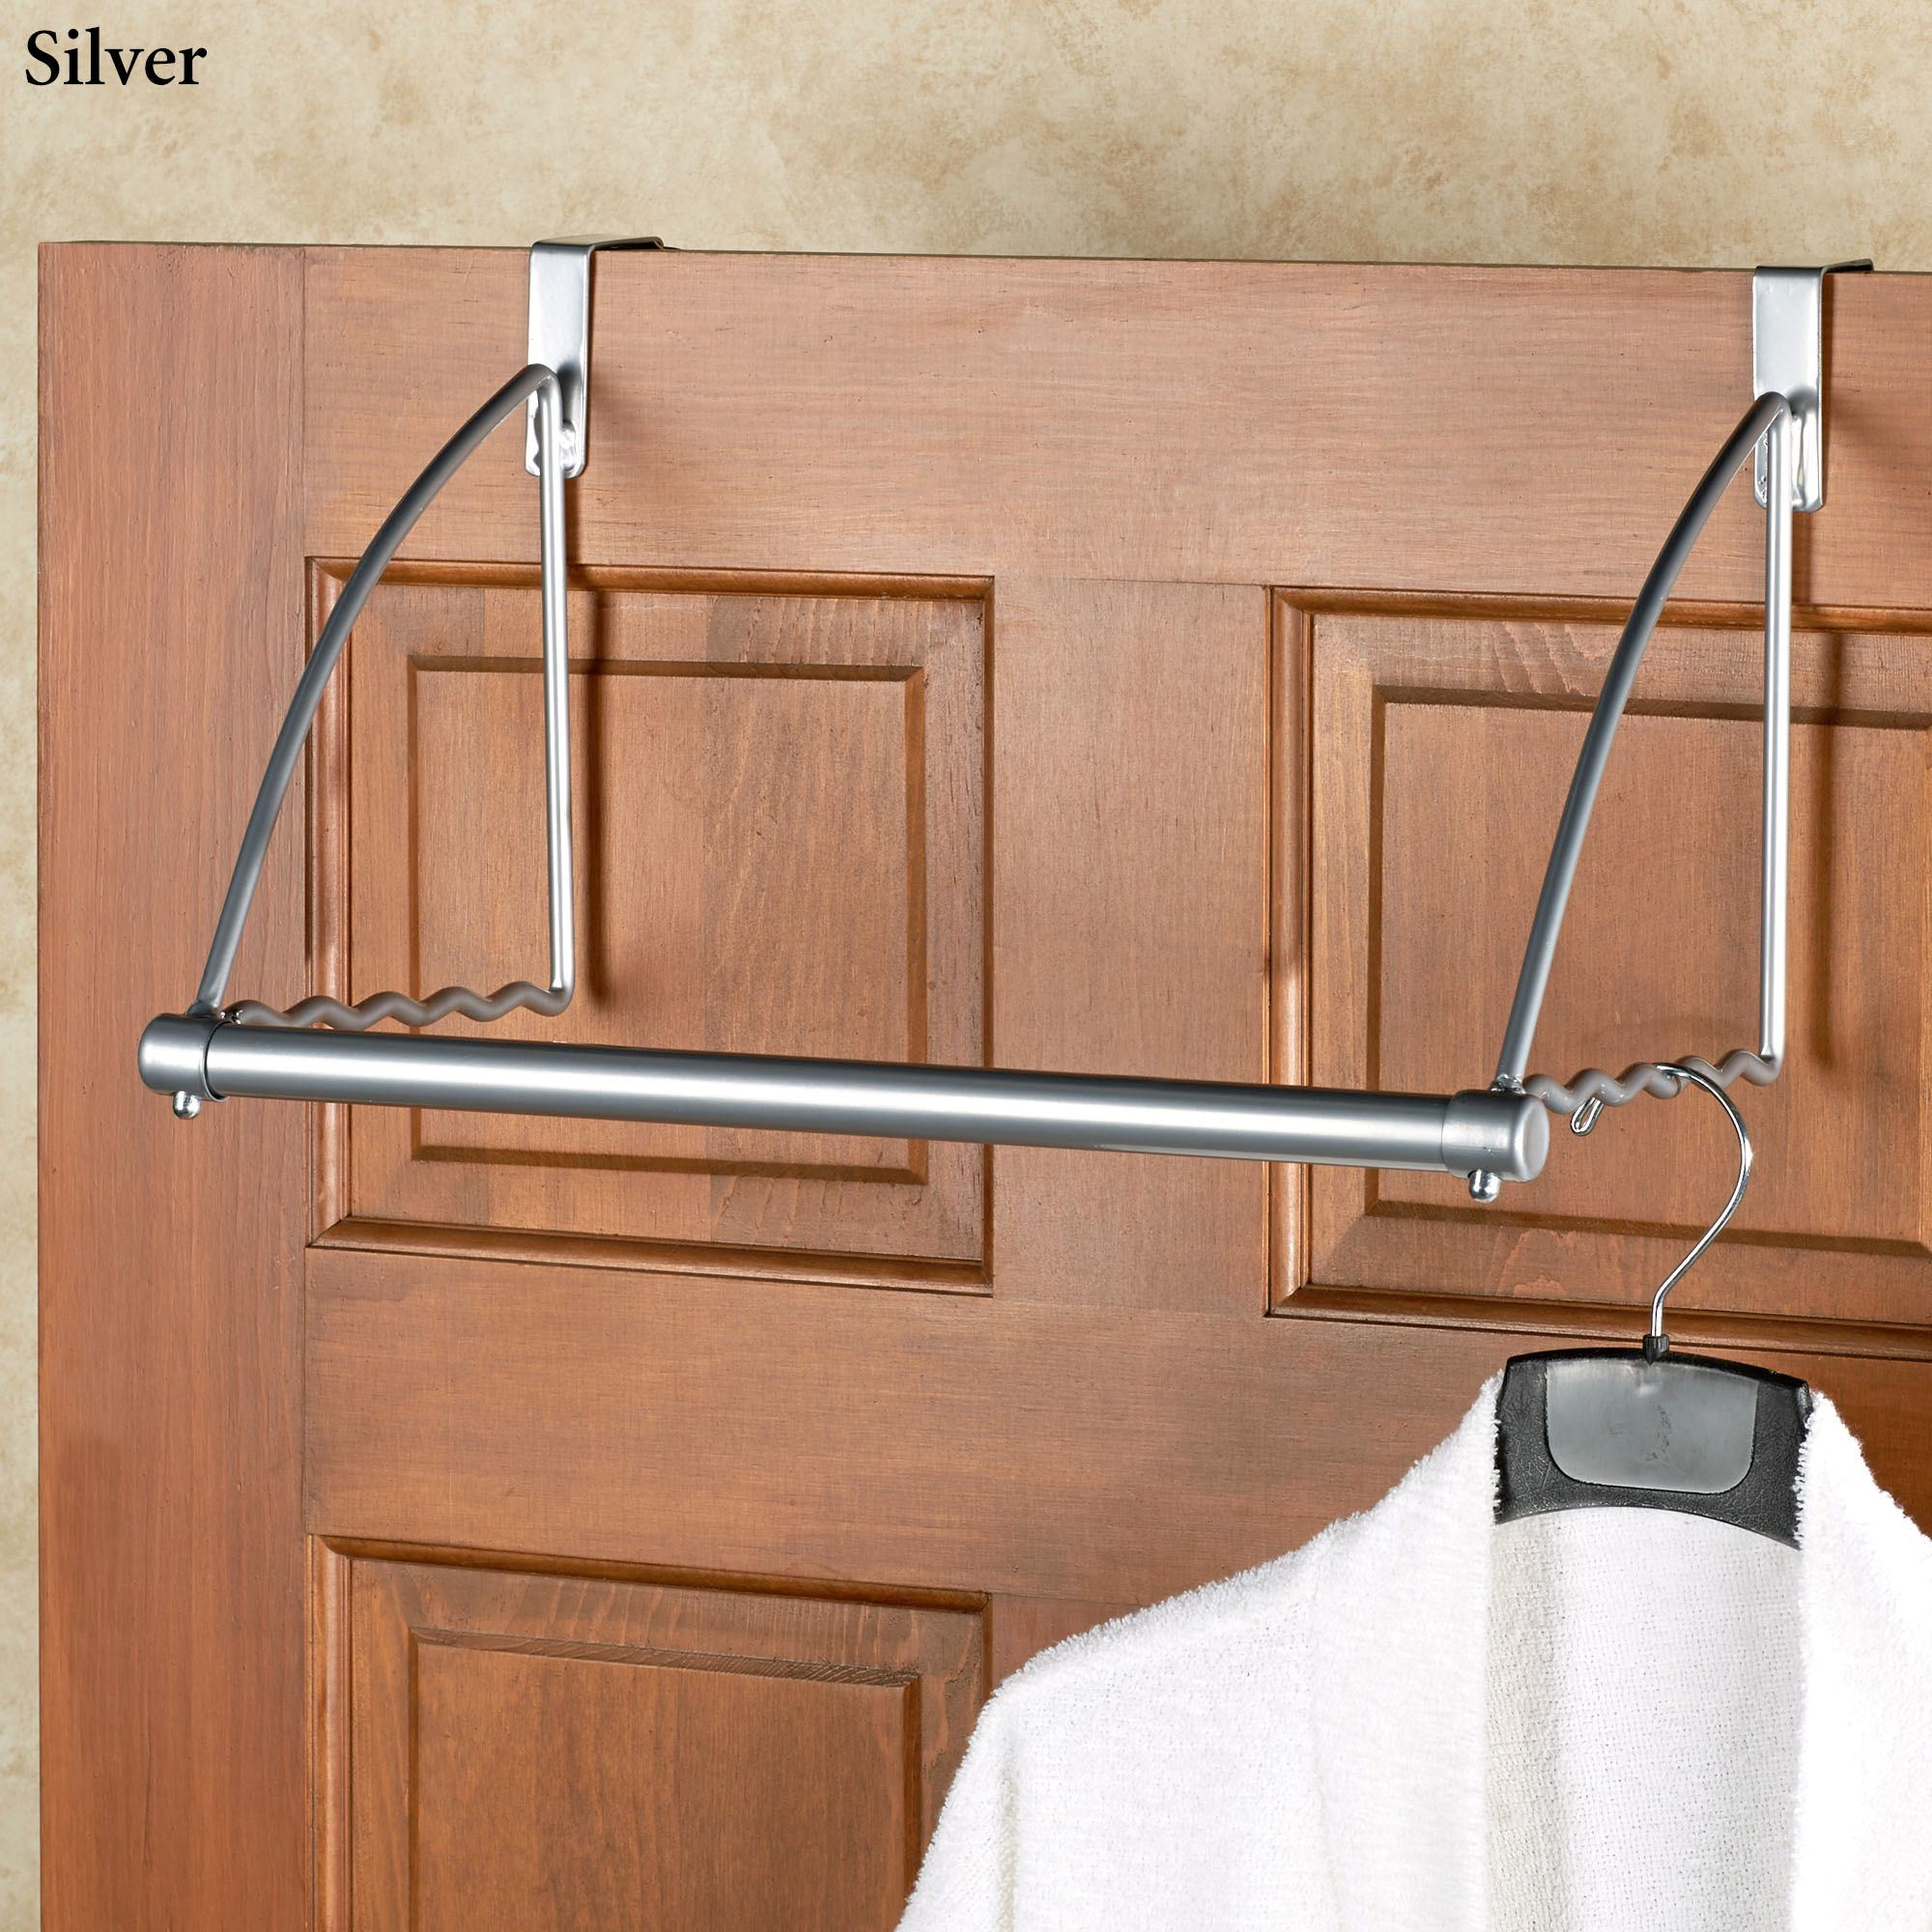 or understairs coat pin clothes closet revolving great storage idea valet seasonal vertical for